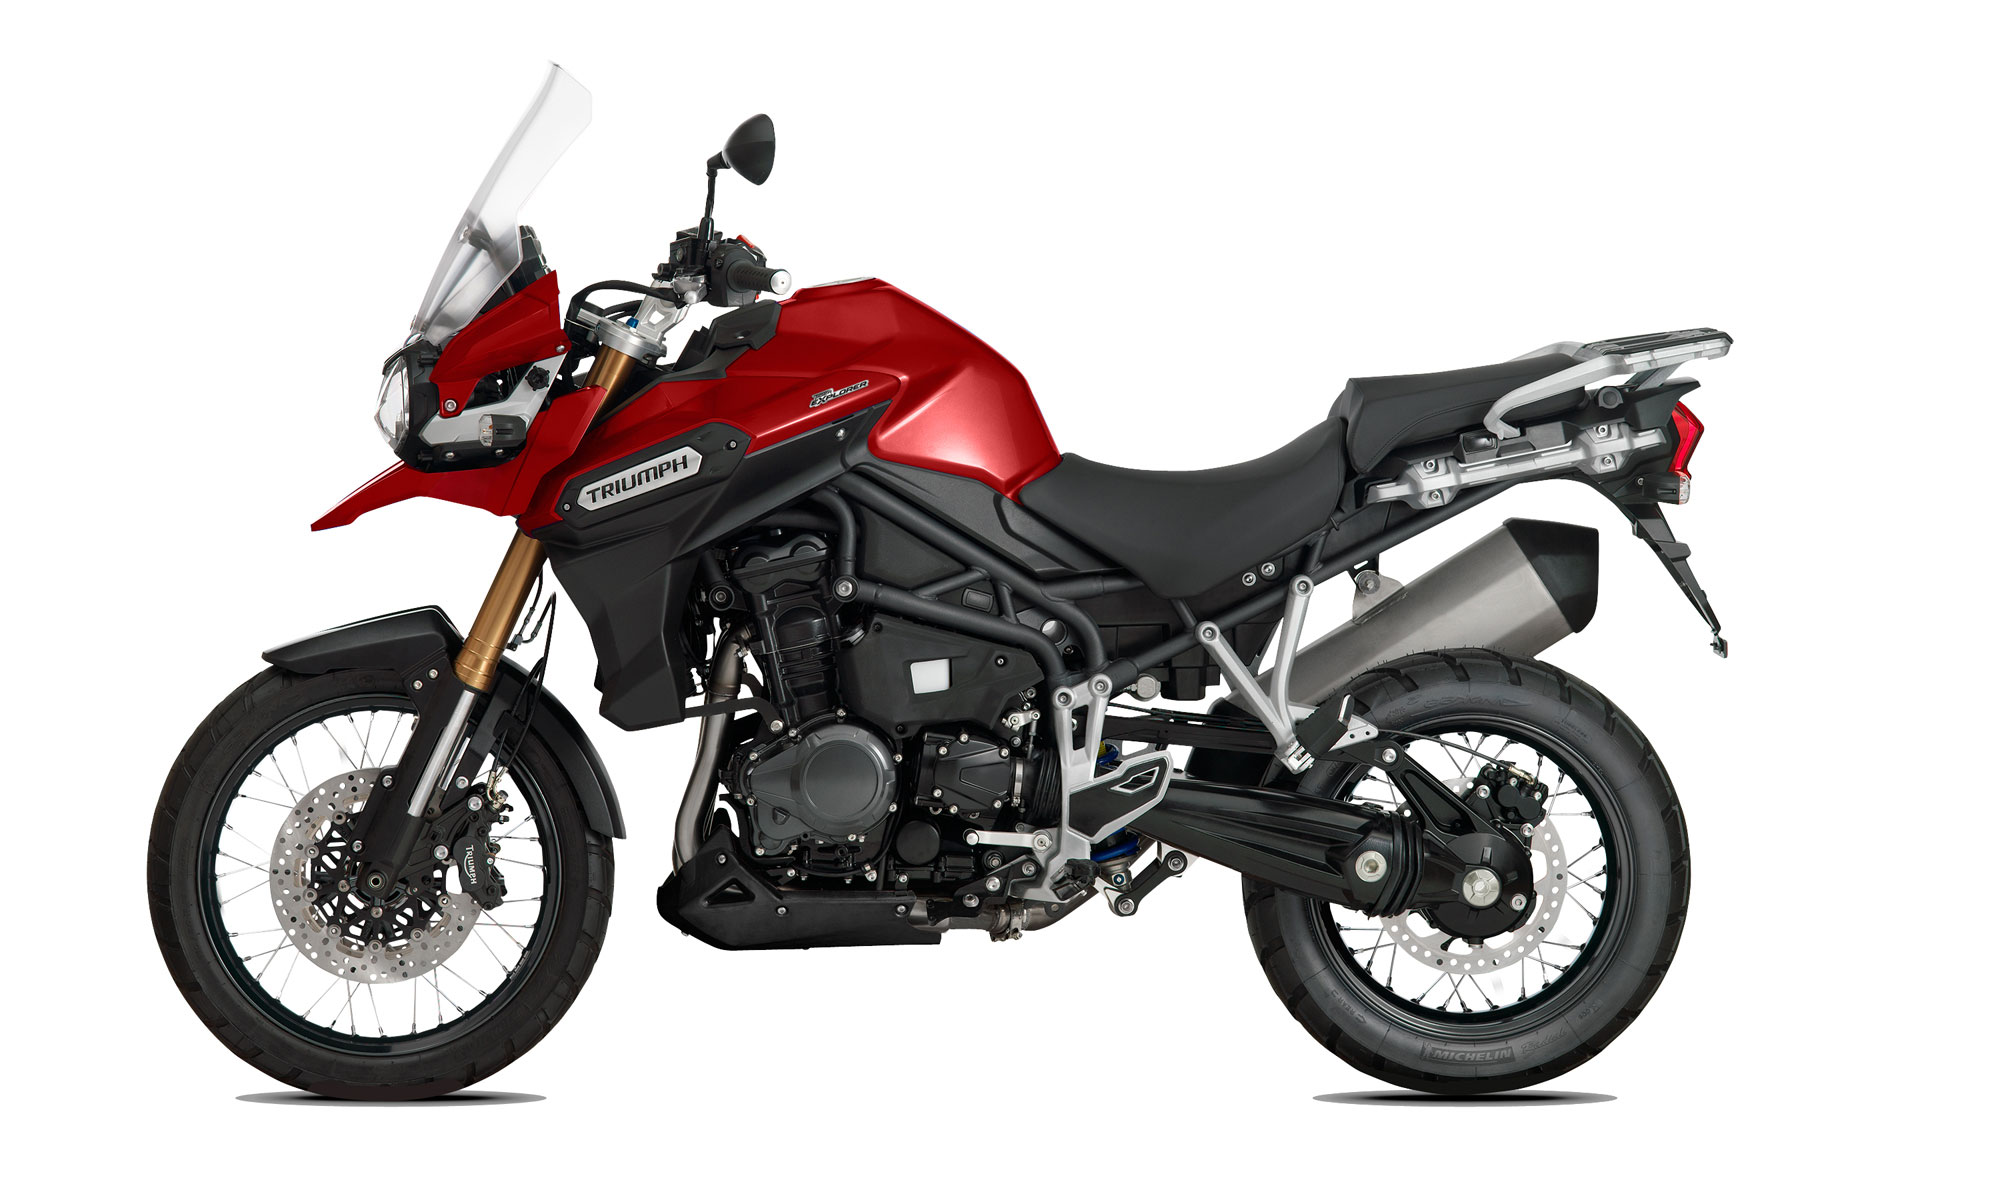 2015 Triumph Tiger Explorer Spoked Wheels Review